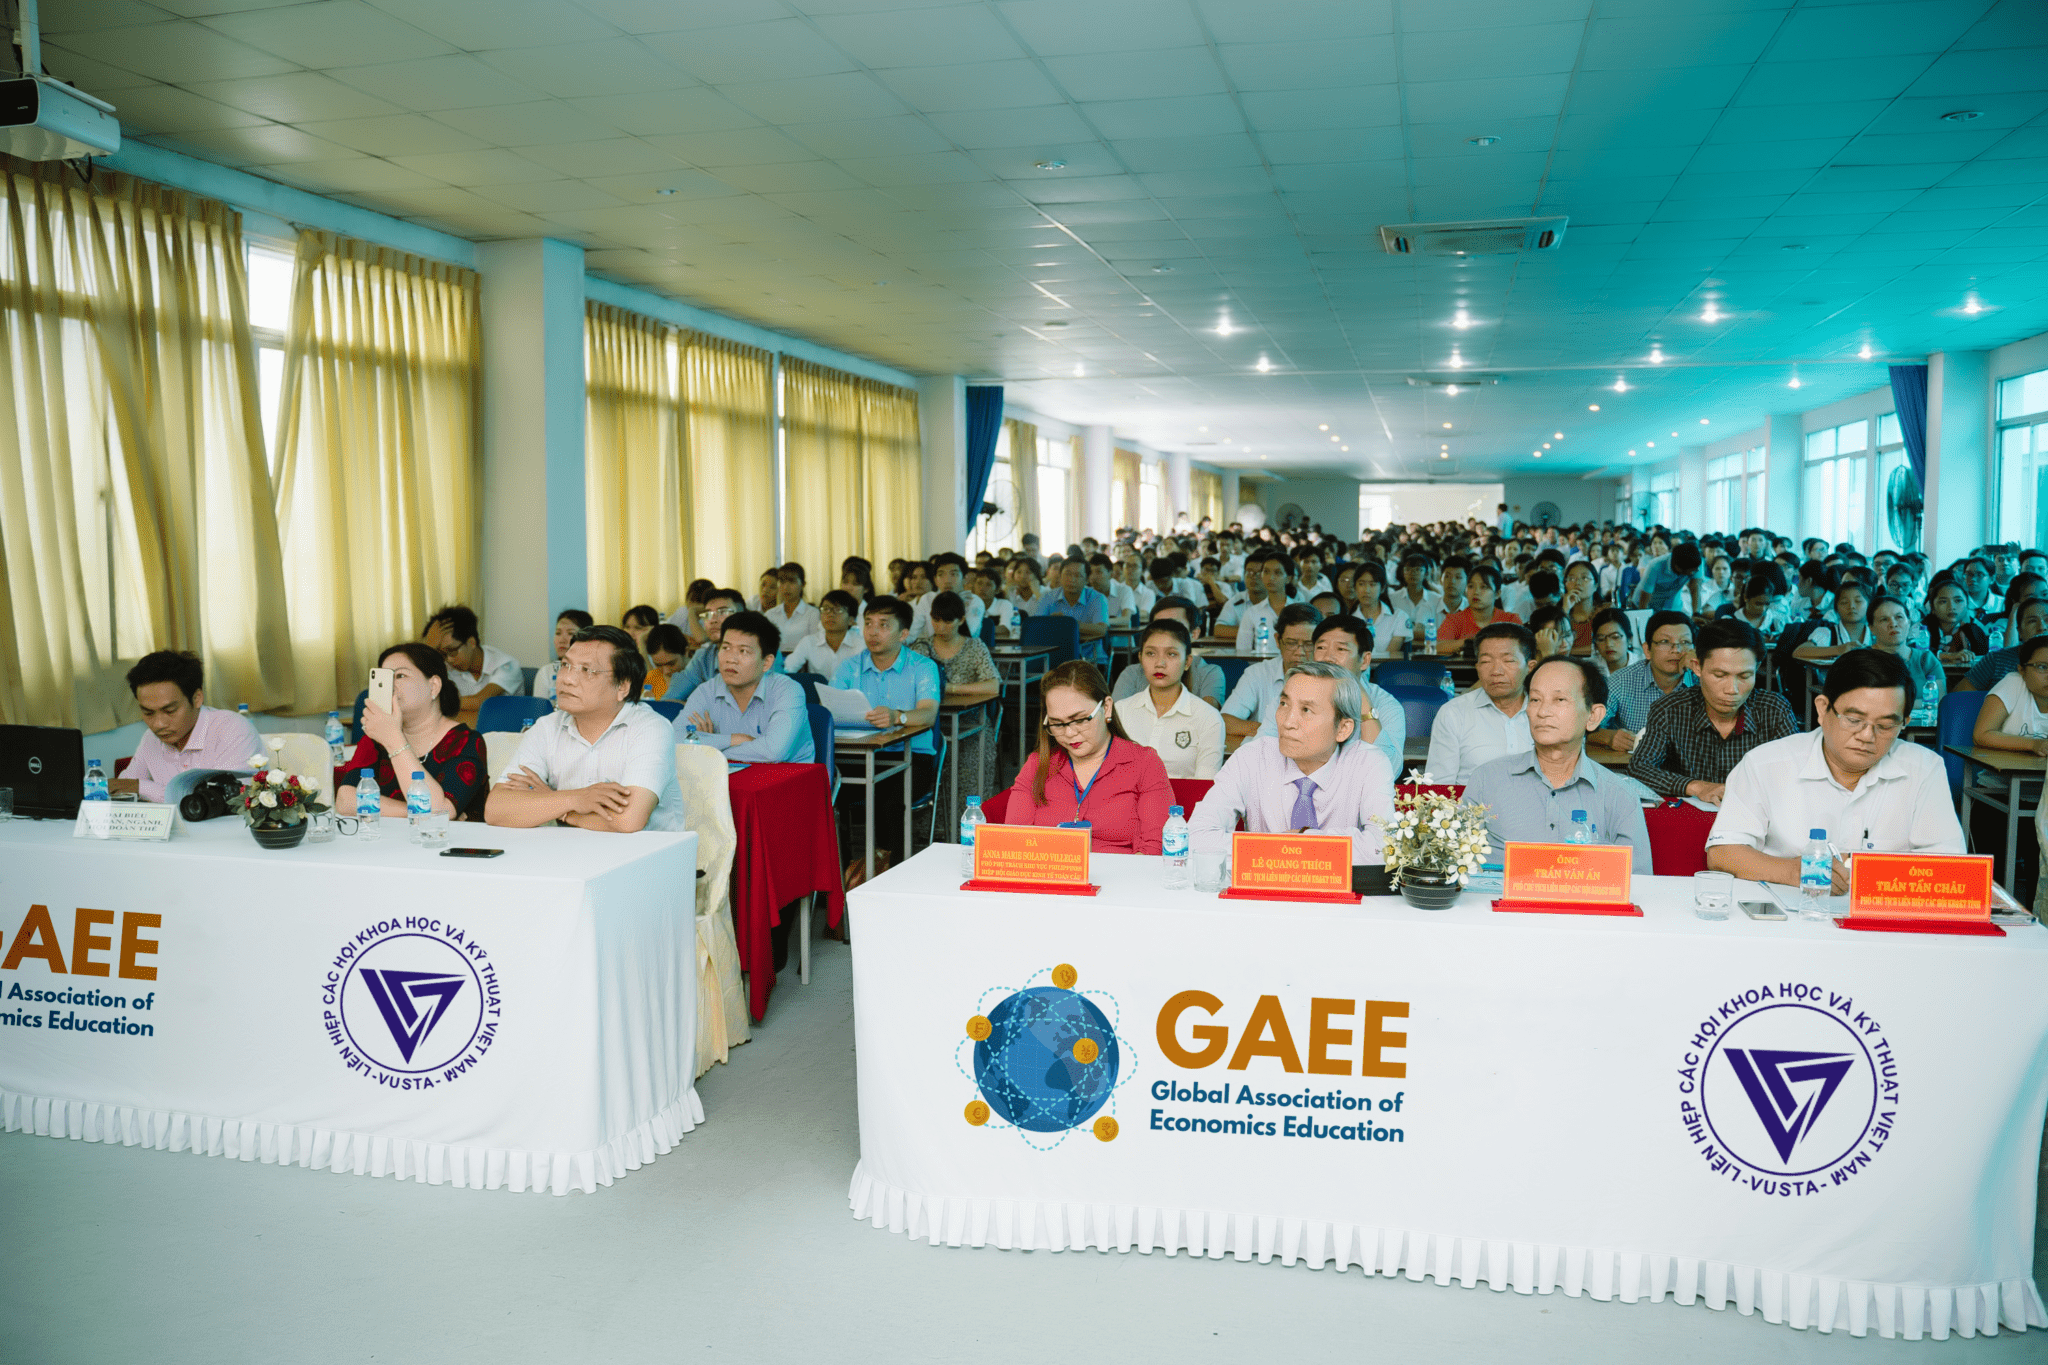 GAEE successfully organized the Southeast Asia Month 2019